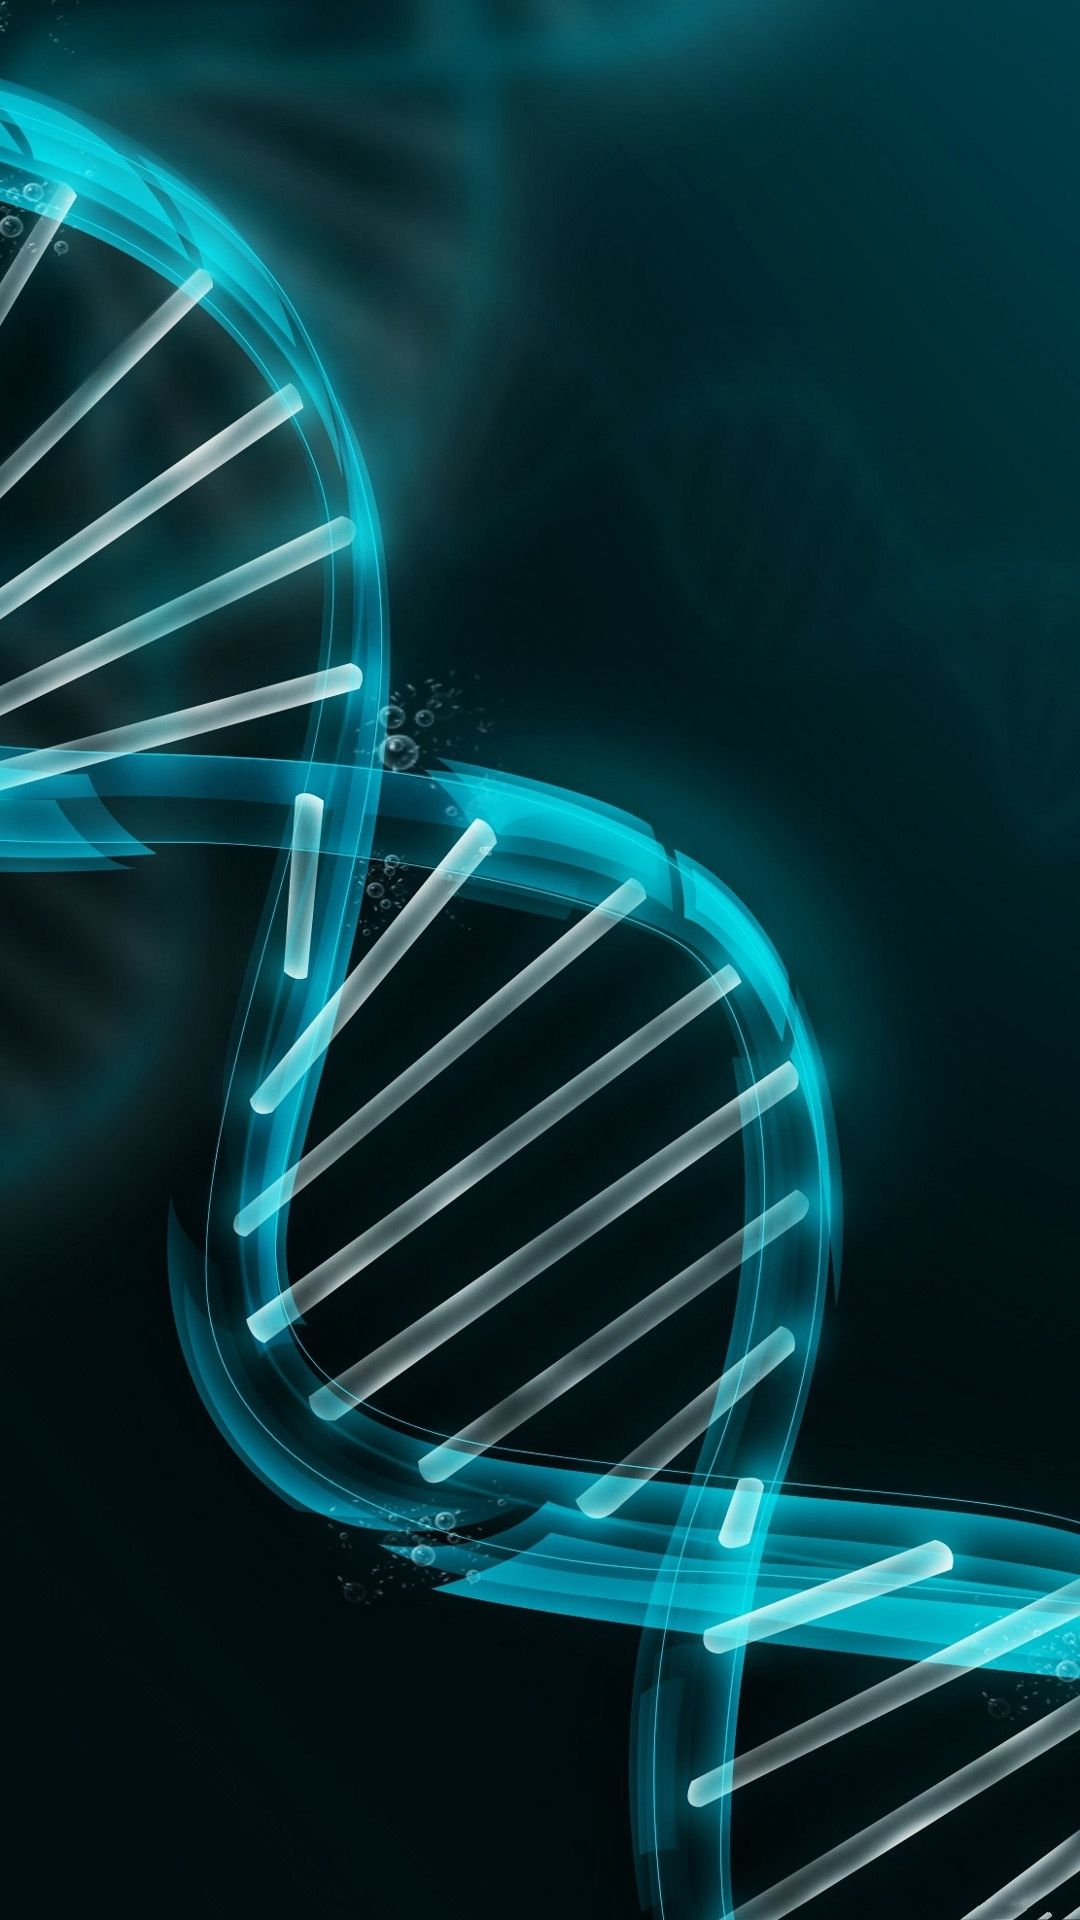 dna Wp | Wallpapers2 | Hd phone wallpapers, 3d wallpaper for mobile, Geometric wallpaper iphone